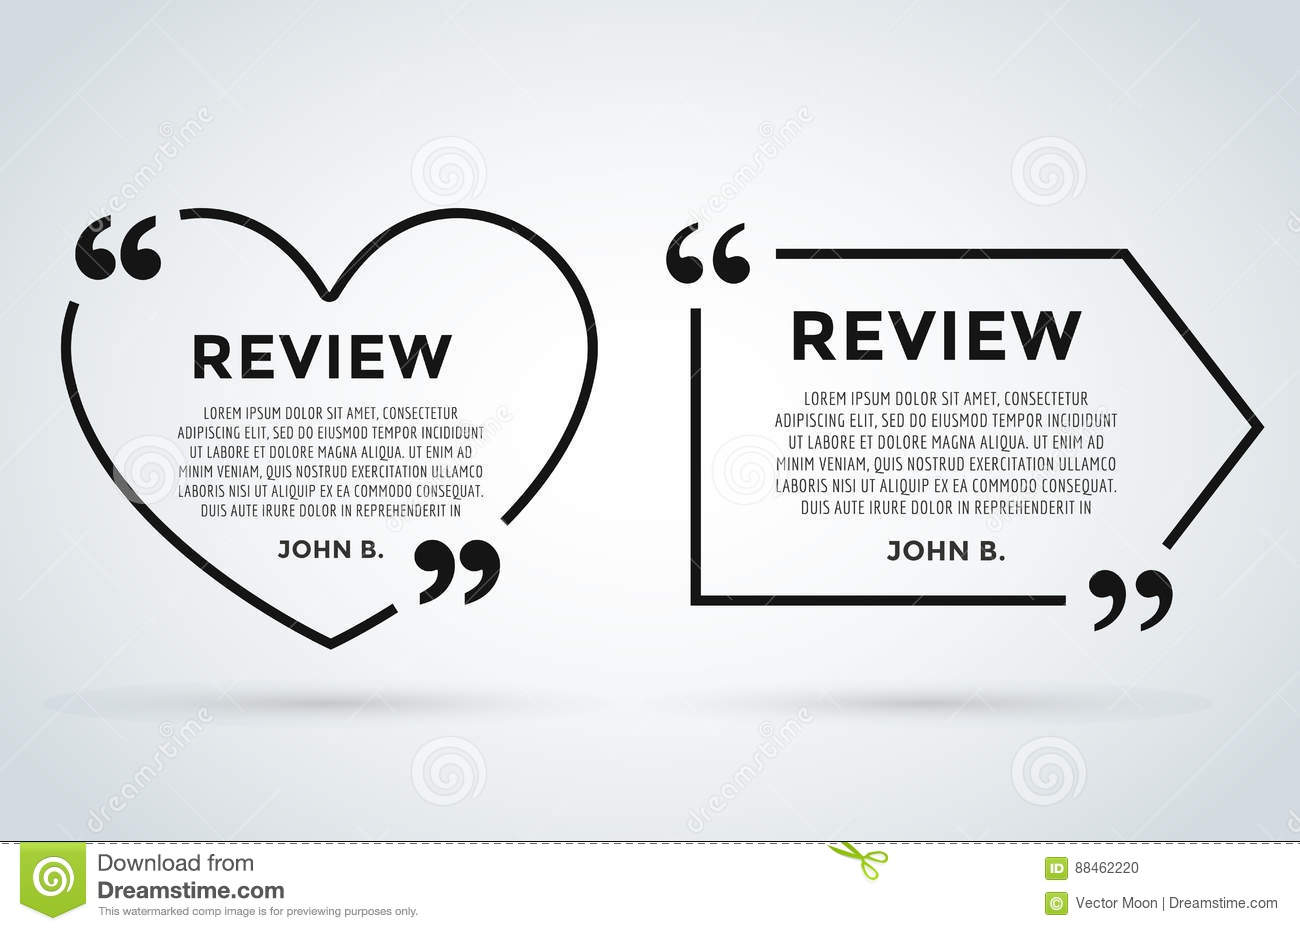 tips on reviewing a document